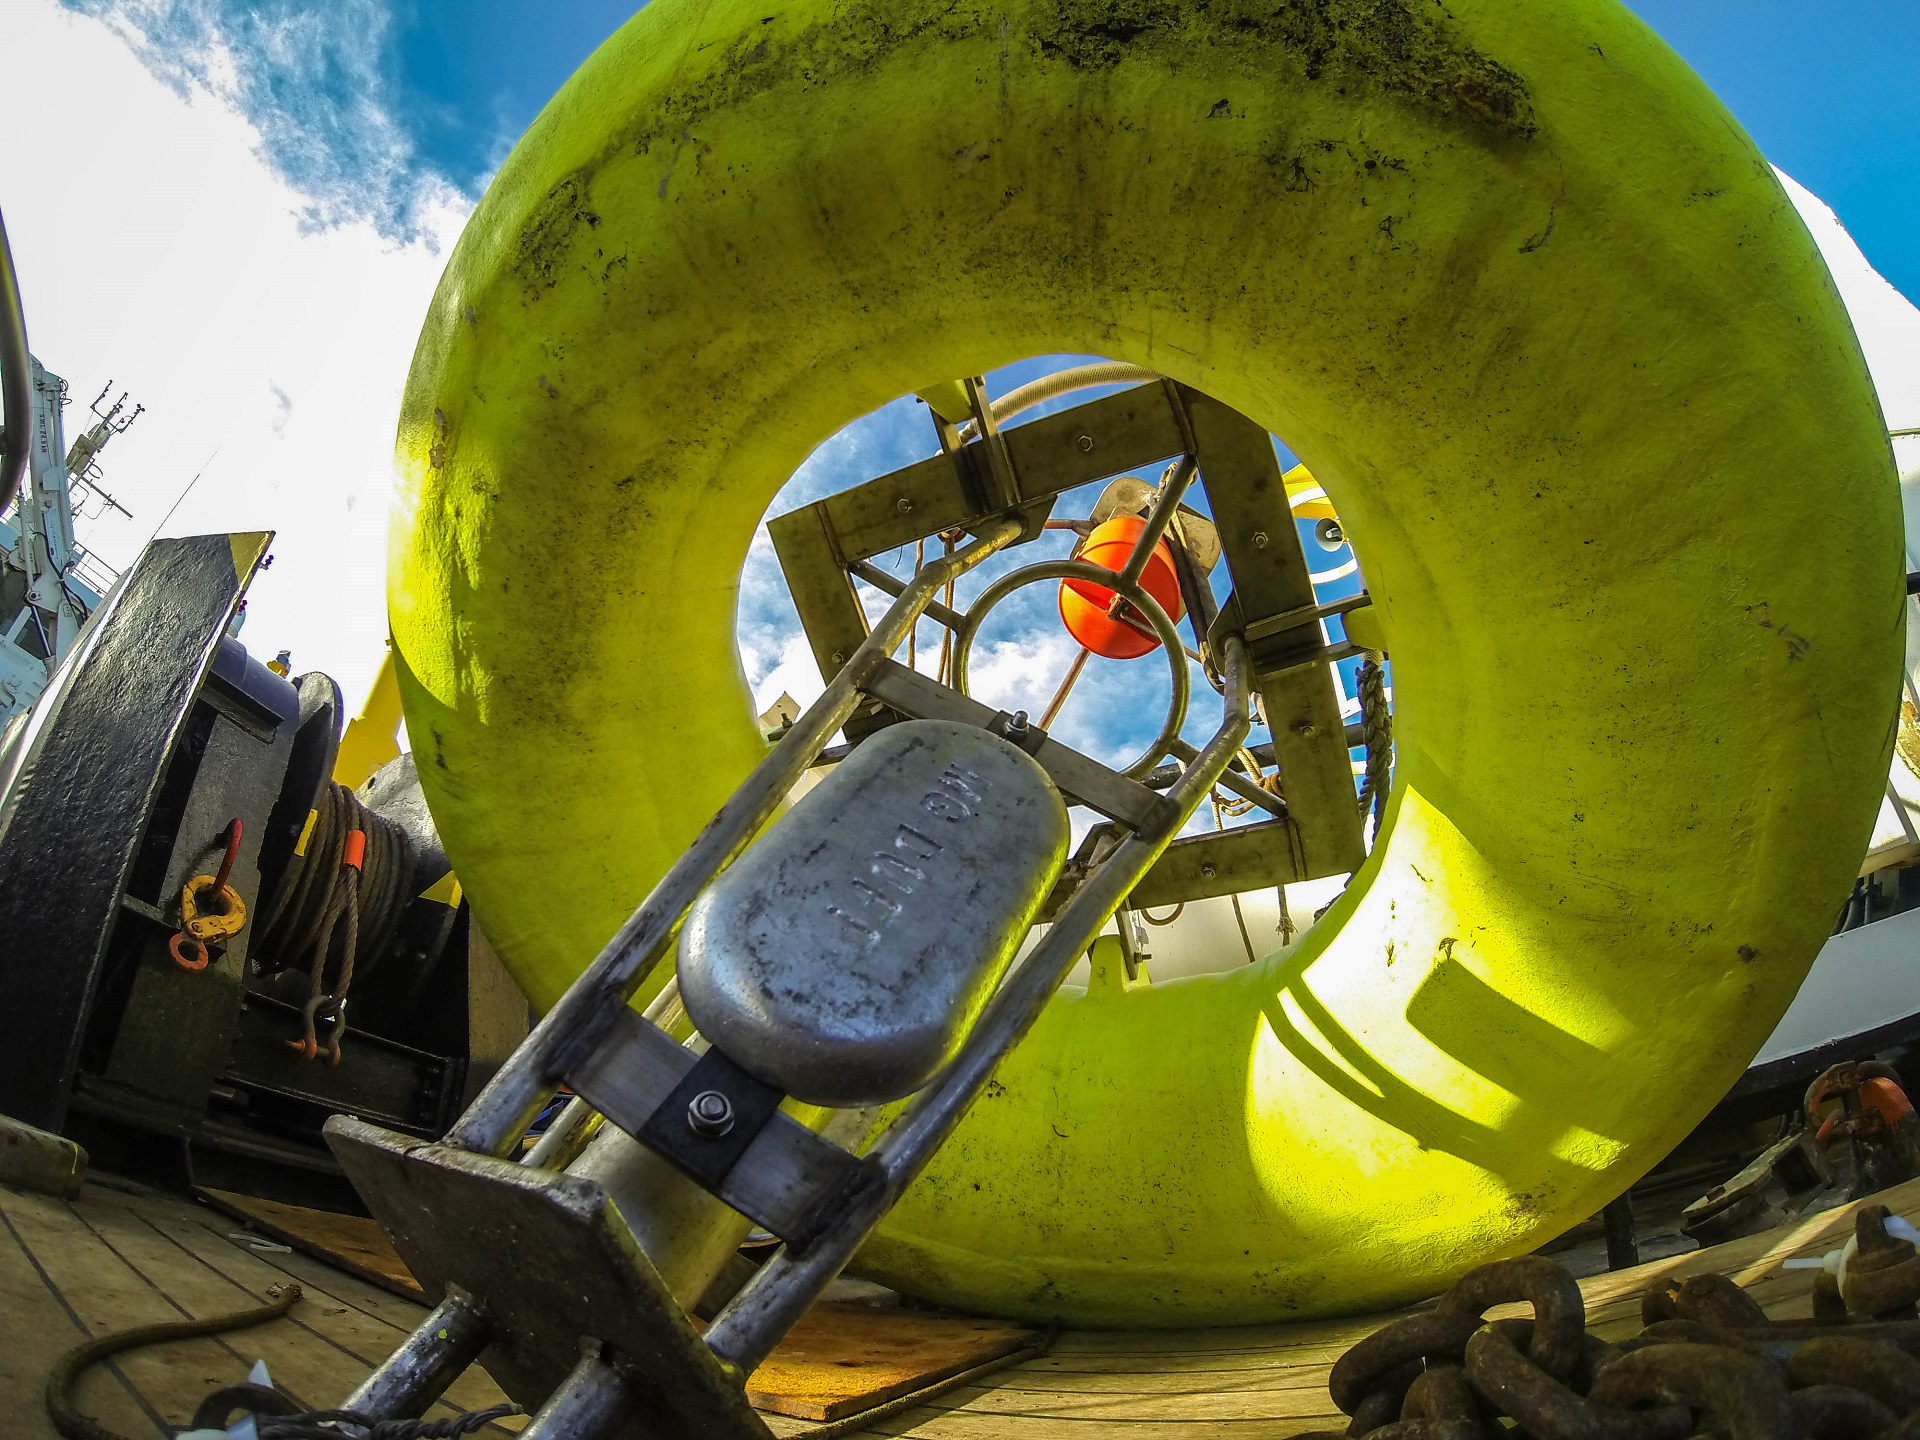 a yellow buoy containing scientific equipment on the deck of a boat